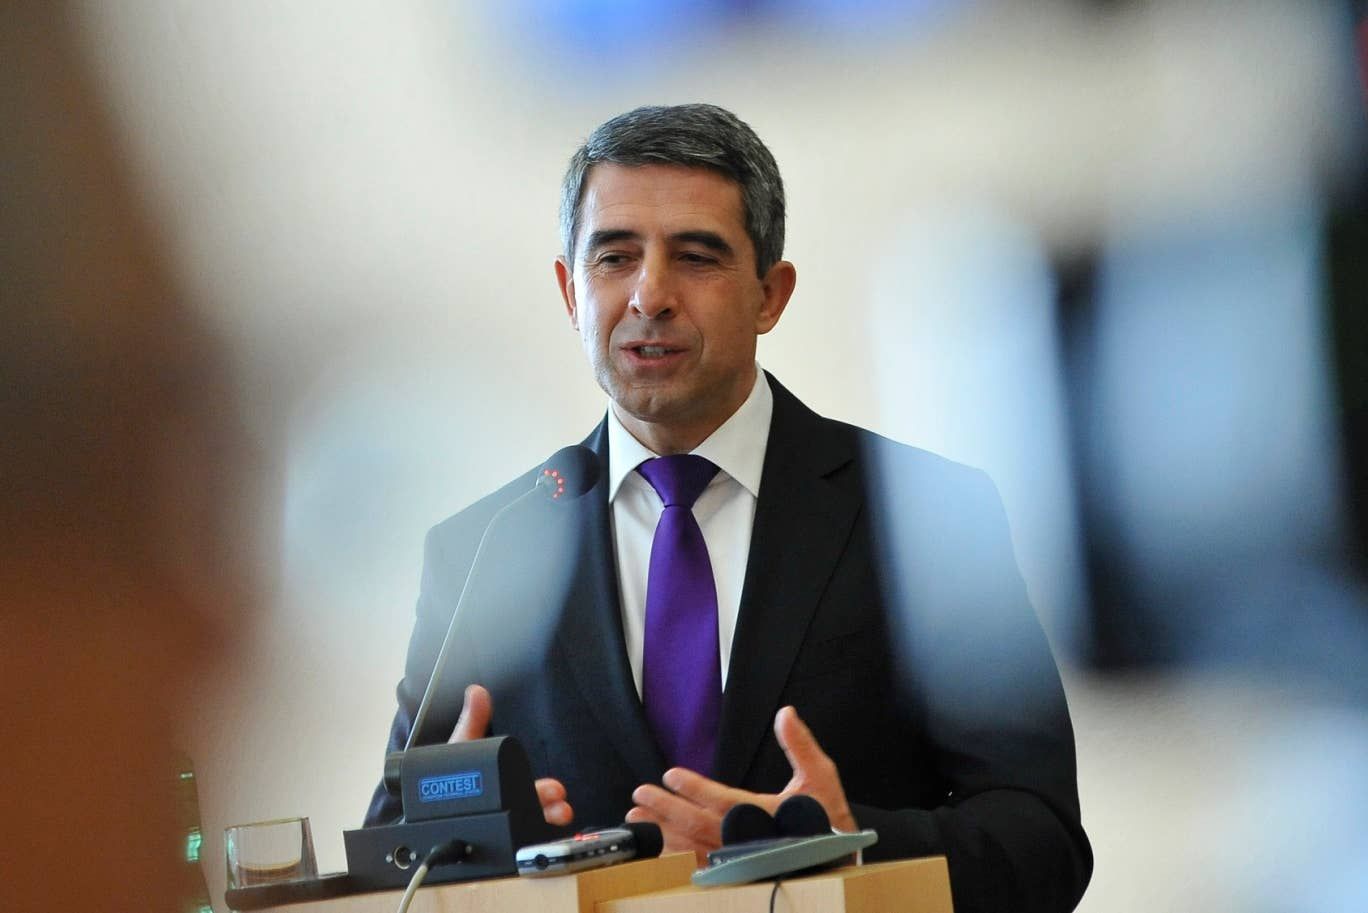 Bulgarian President Rosen Plevneliev has warned David Cameron against turning to 'isolation and nationalism' in order to win votes